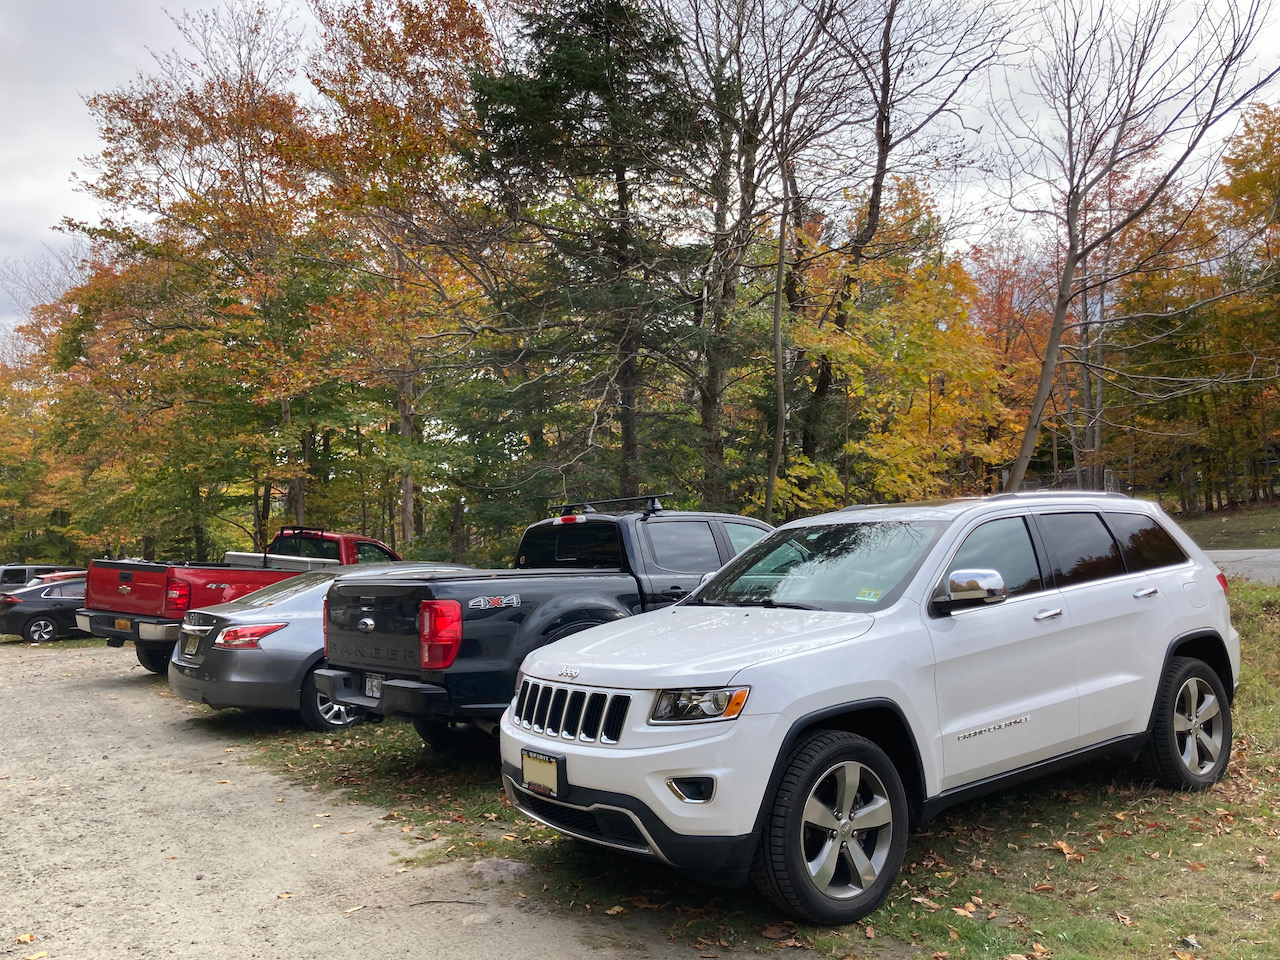 2014 Jeep Grand Cherokee in parking lot for Blue Mountain.